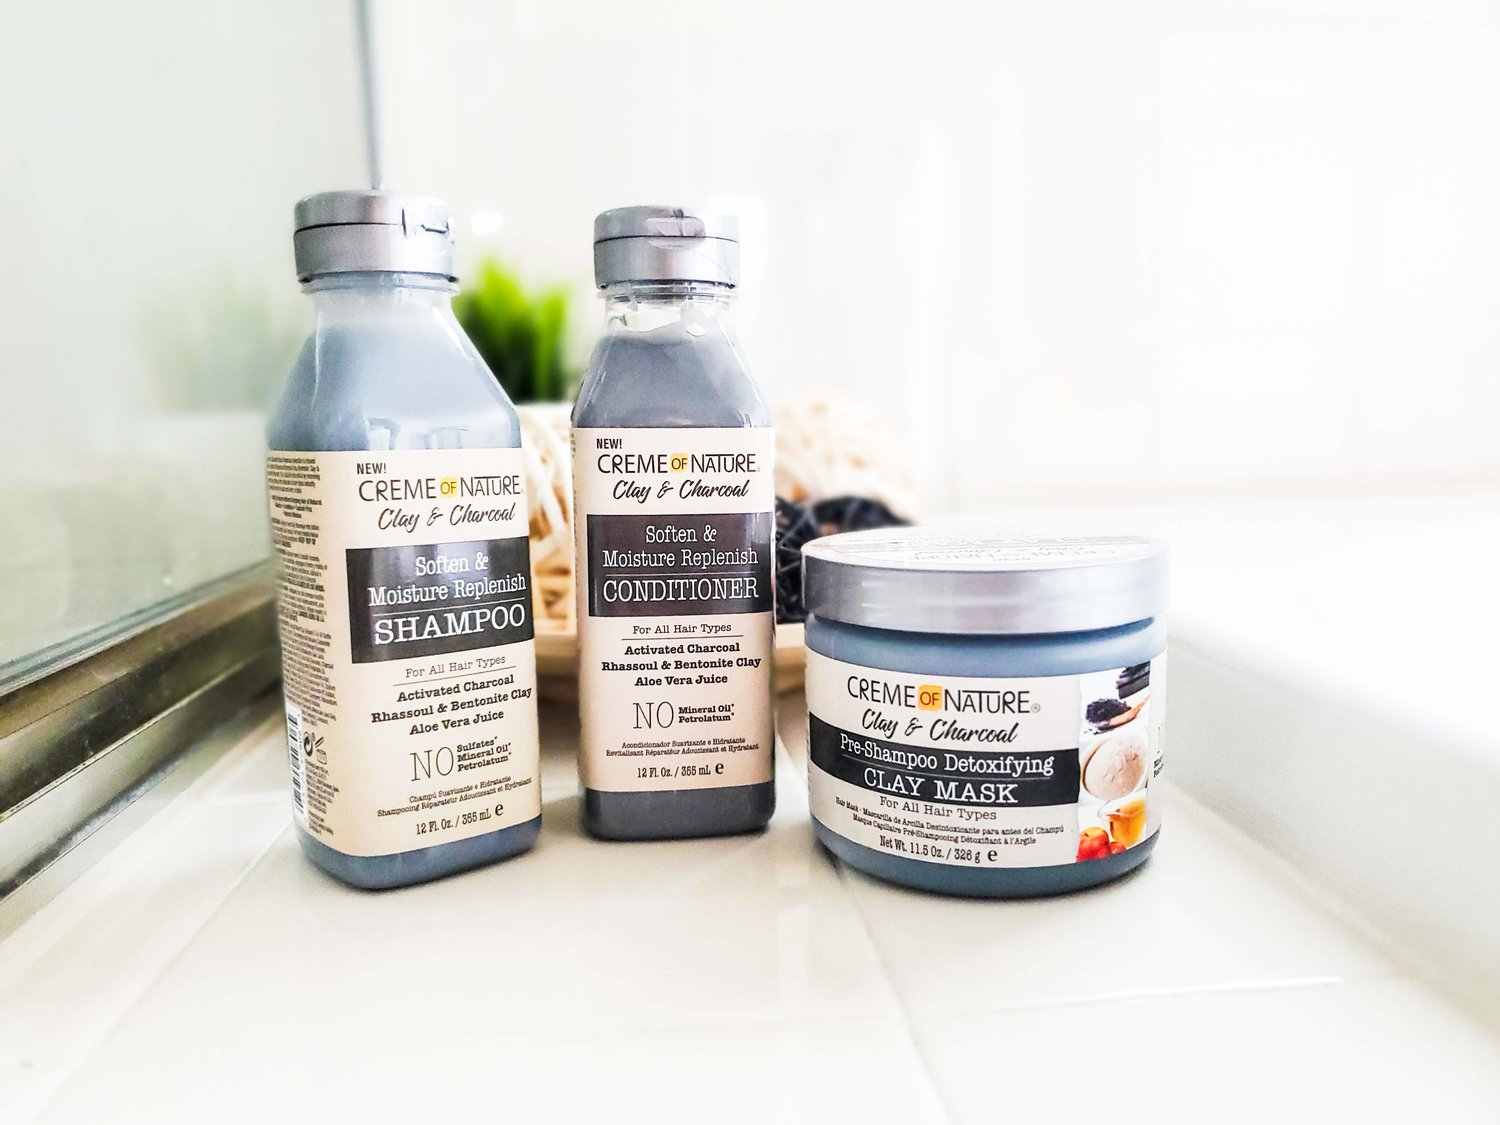 Benefits of clay mask for hair - Creme of Nature's New Clay and Charcoal Collection